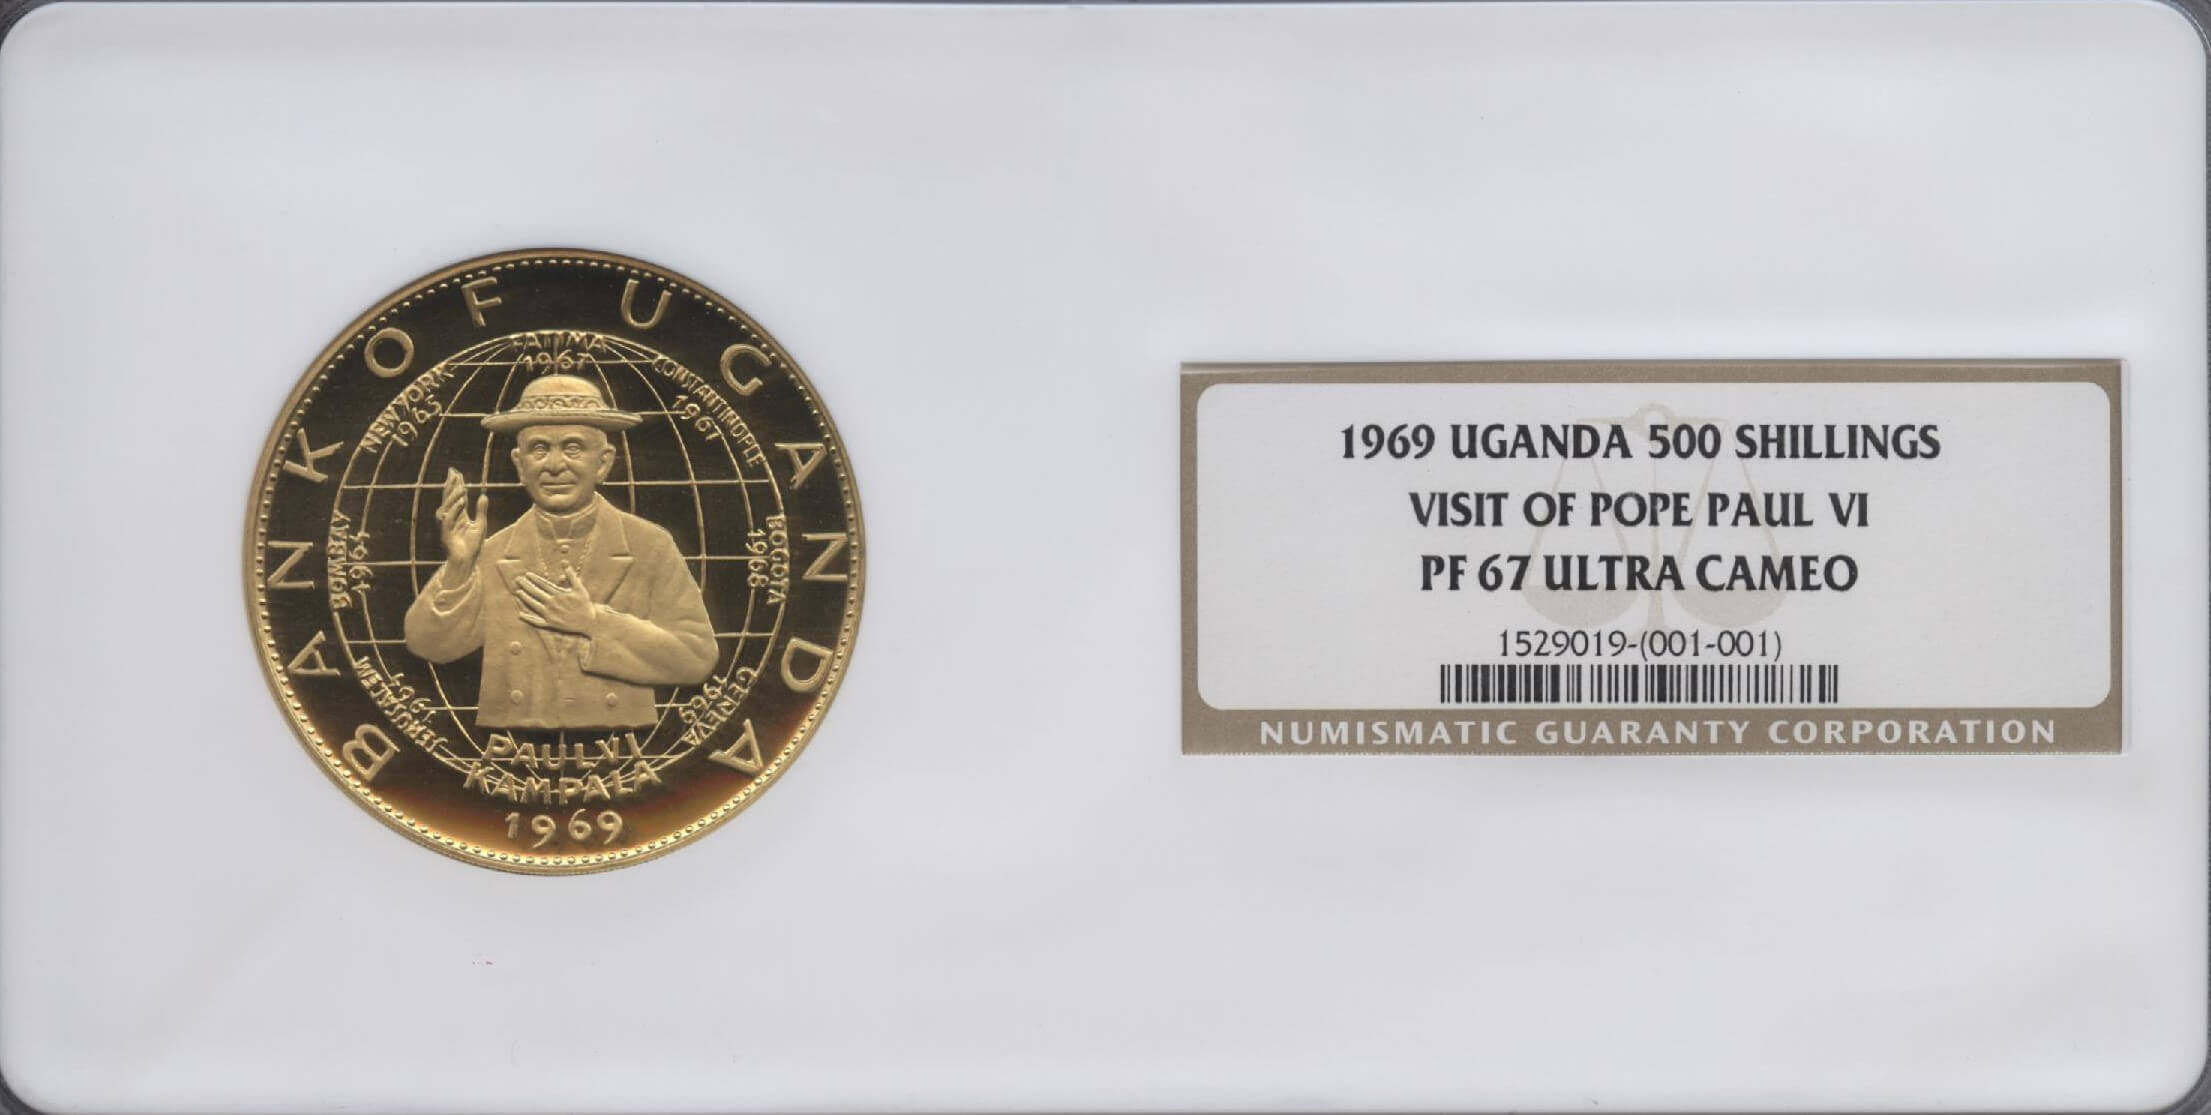 Uganda Coins | William Youngerman